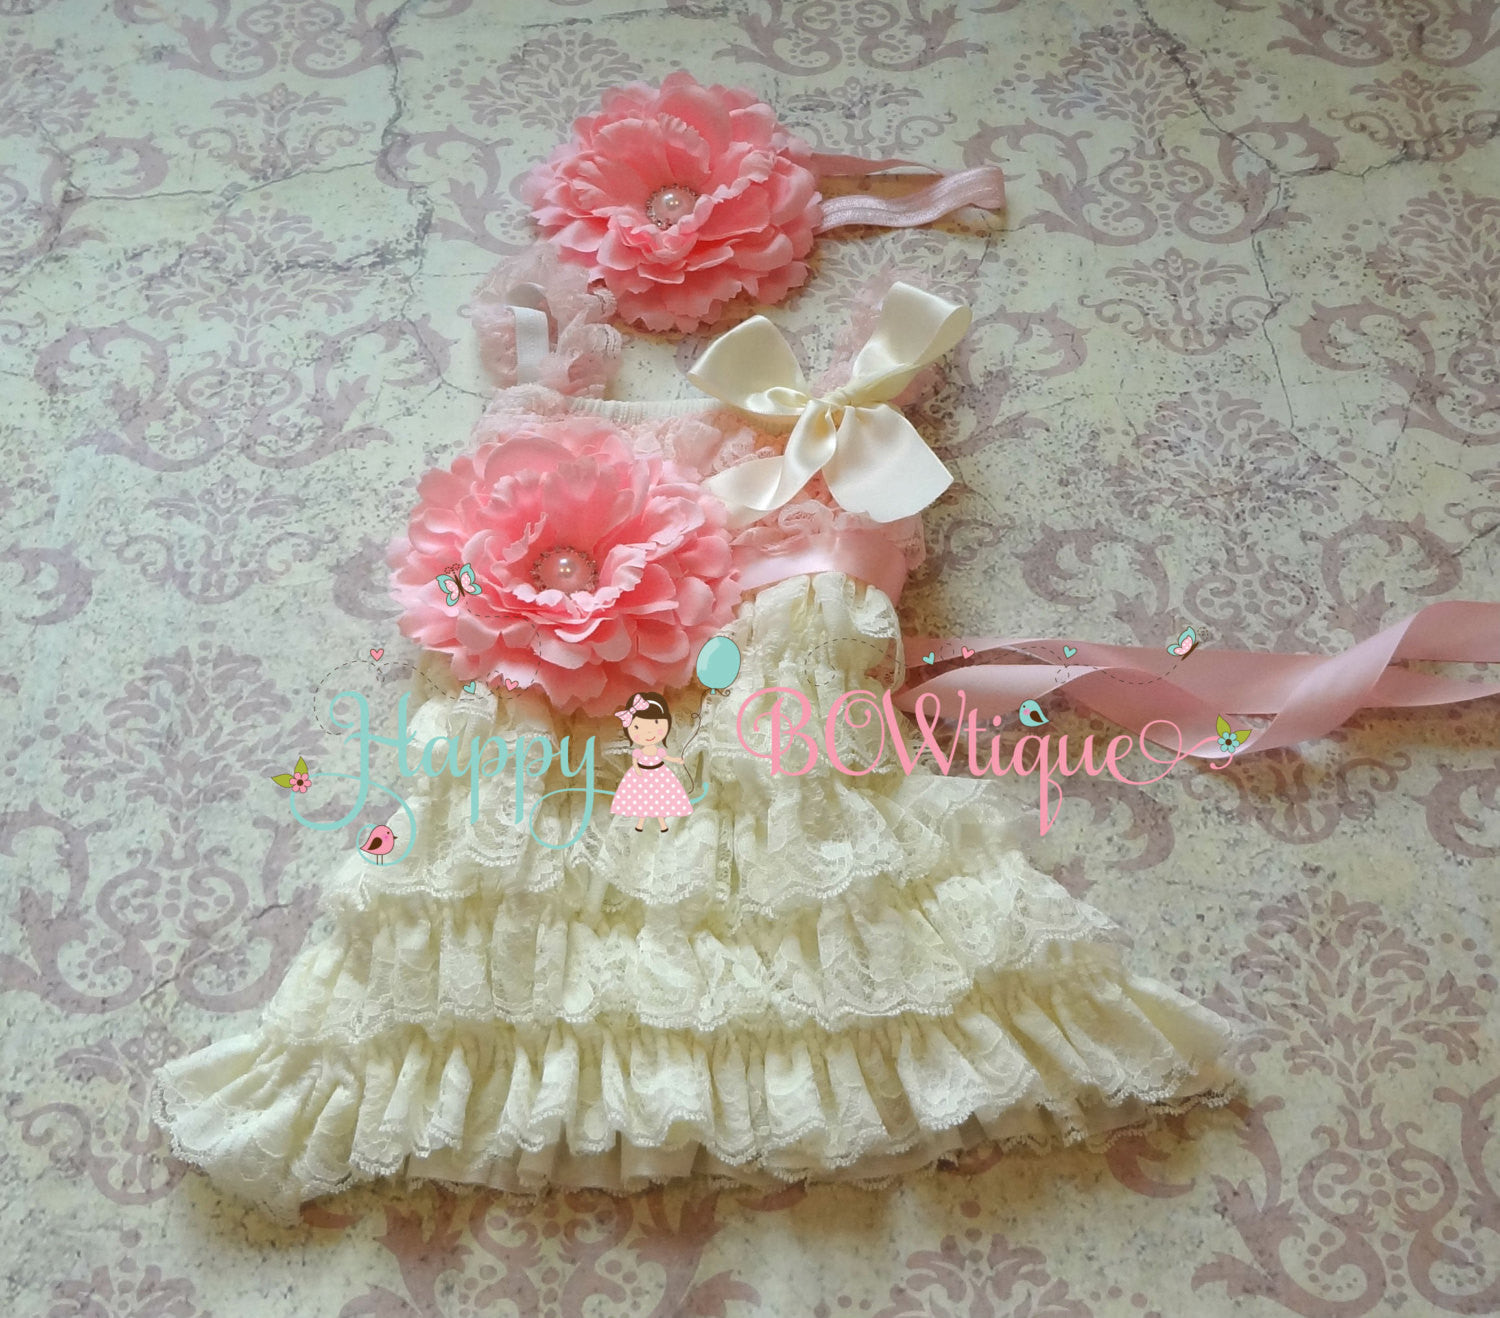 Ivory Flower girl dress/ Ivory Blush Pink Girl's Lace Dress set - Happy BOWtique - children's clothing, Baby Girl clothing